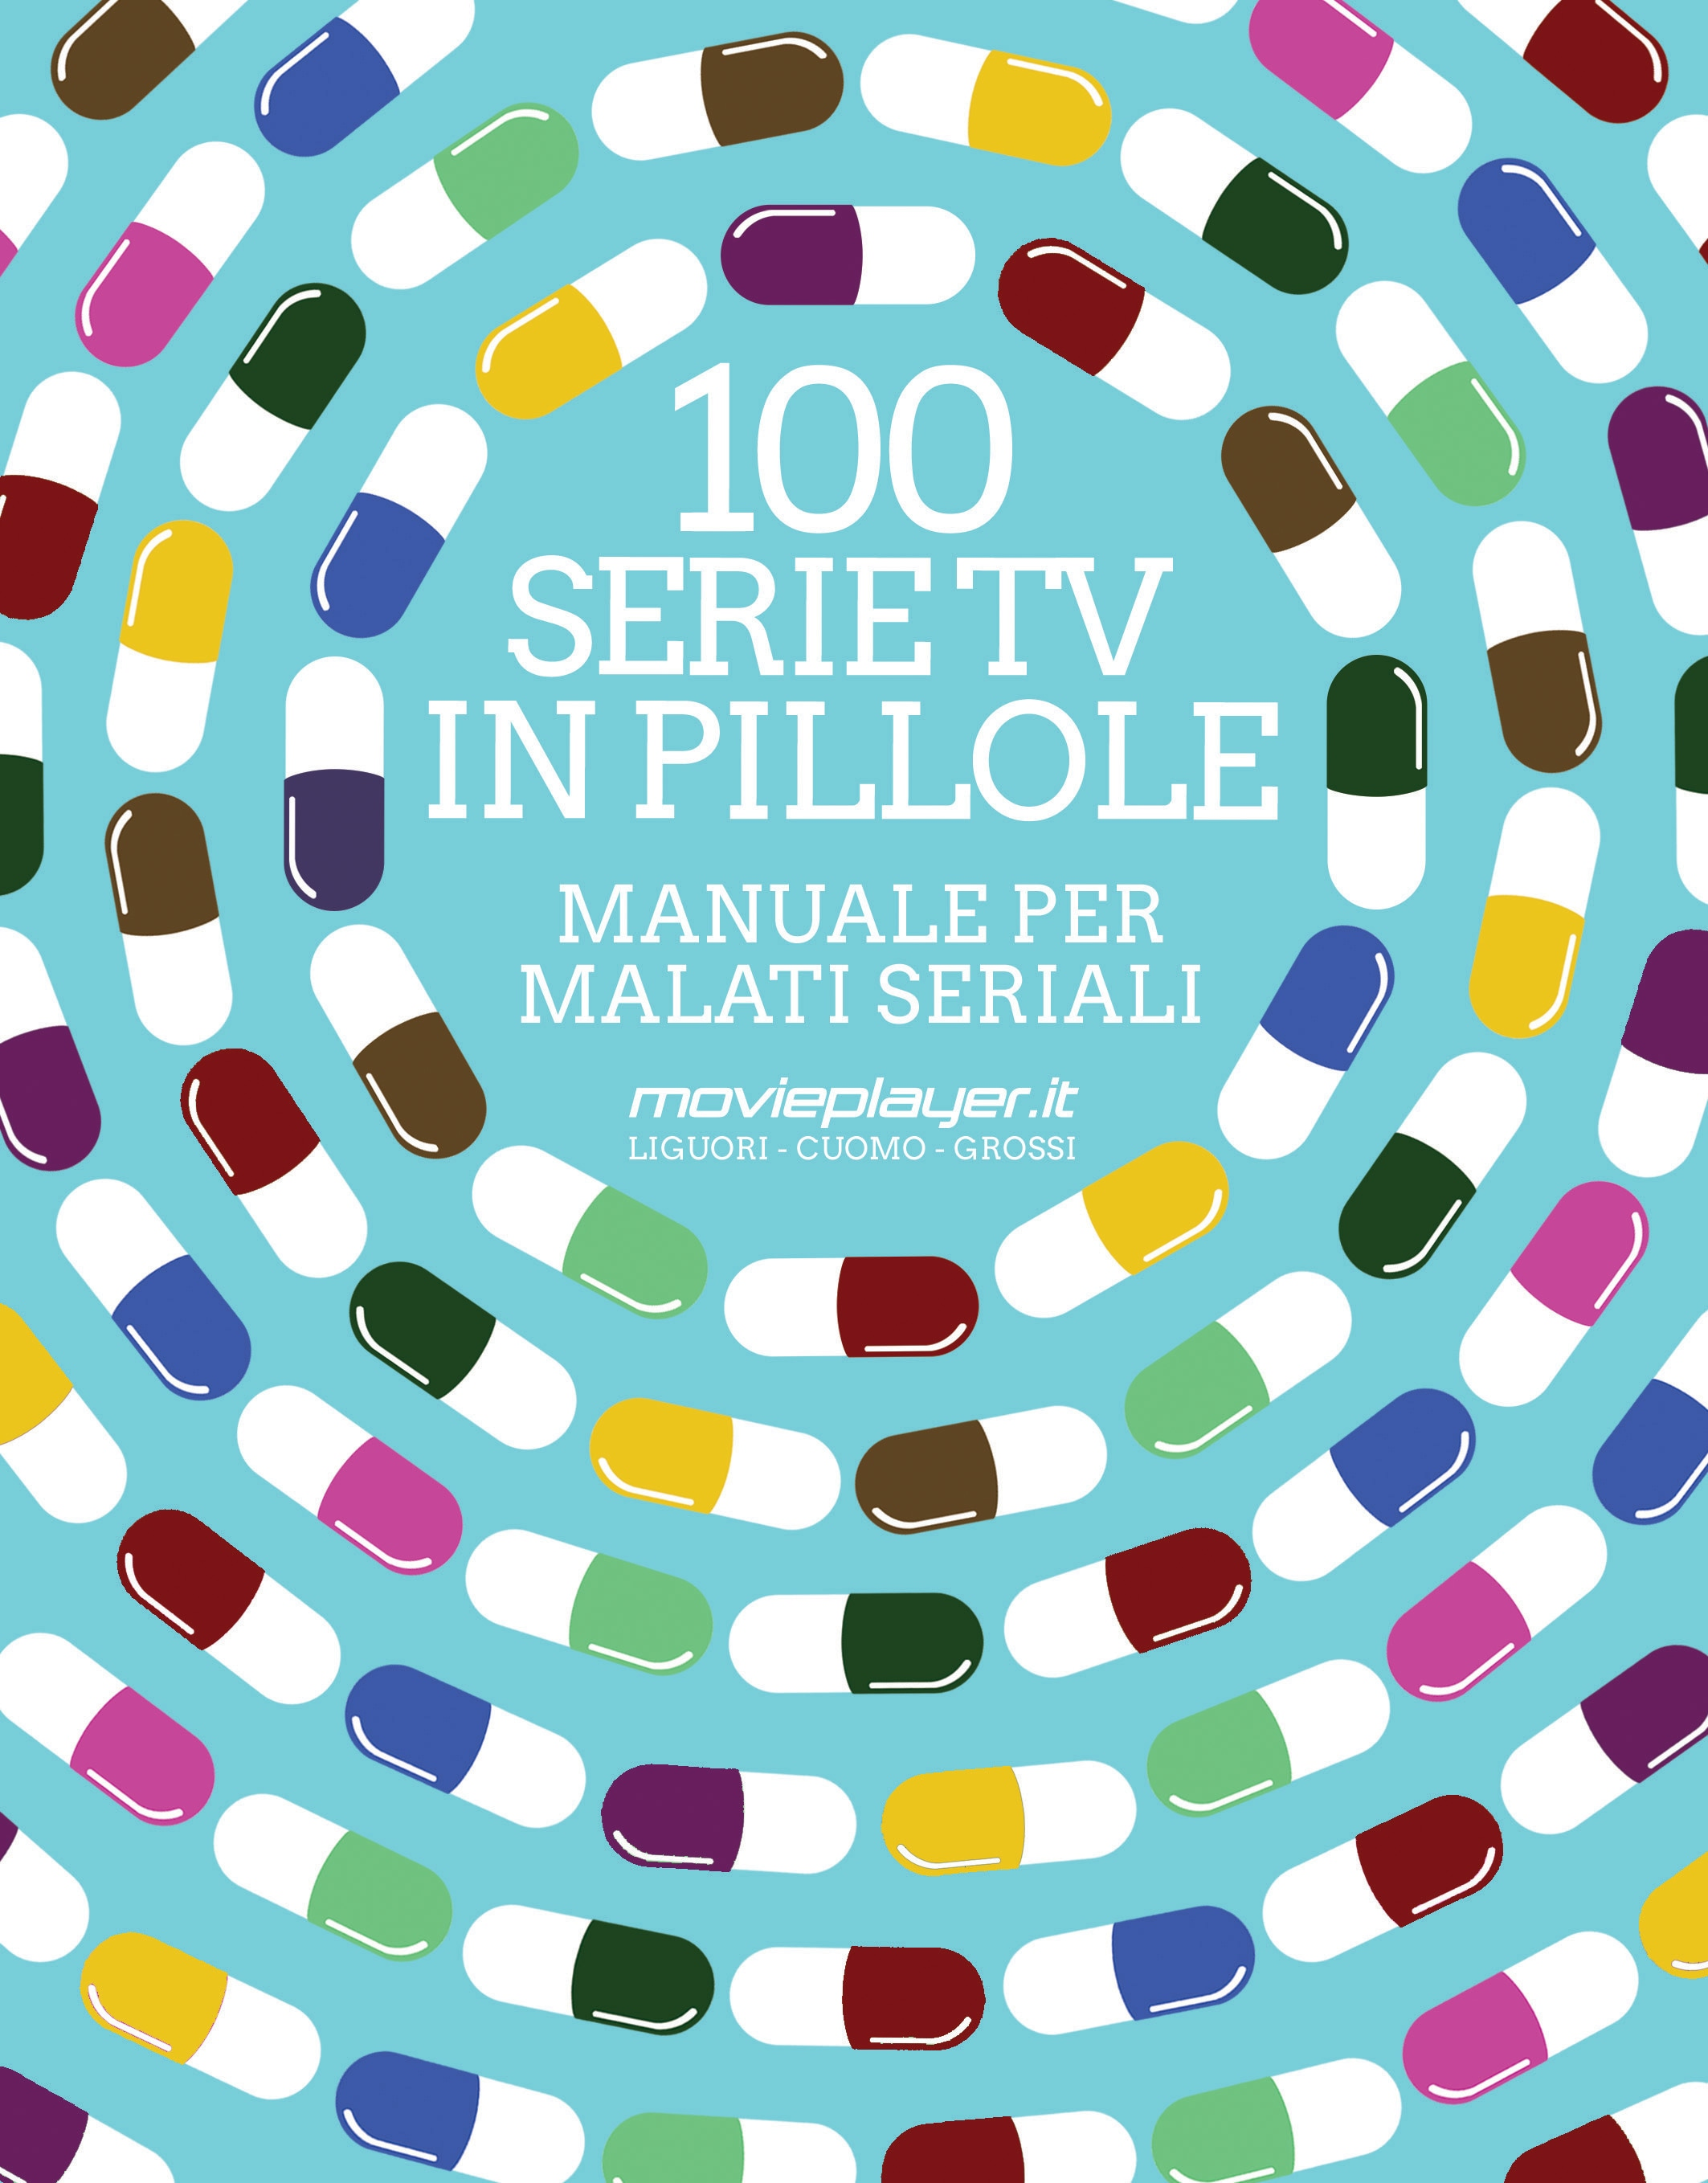 100 serie tv in pillole